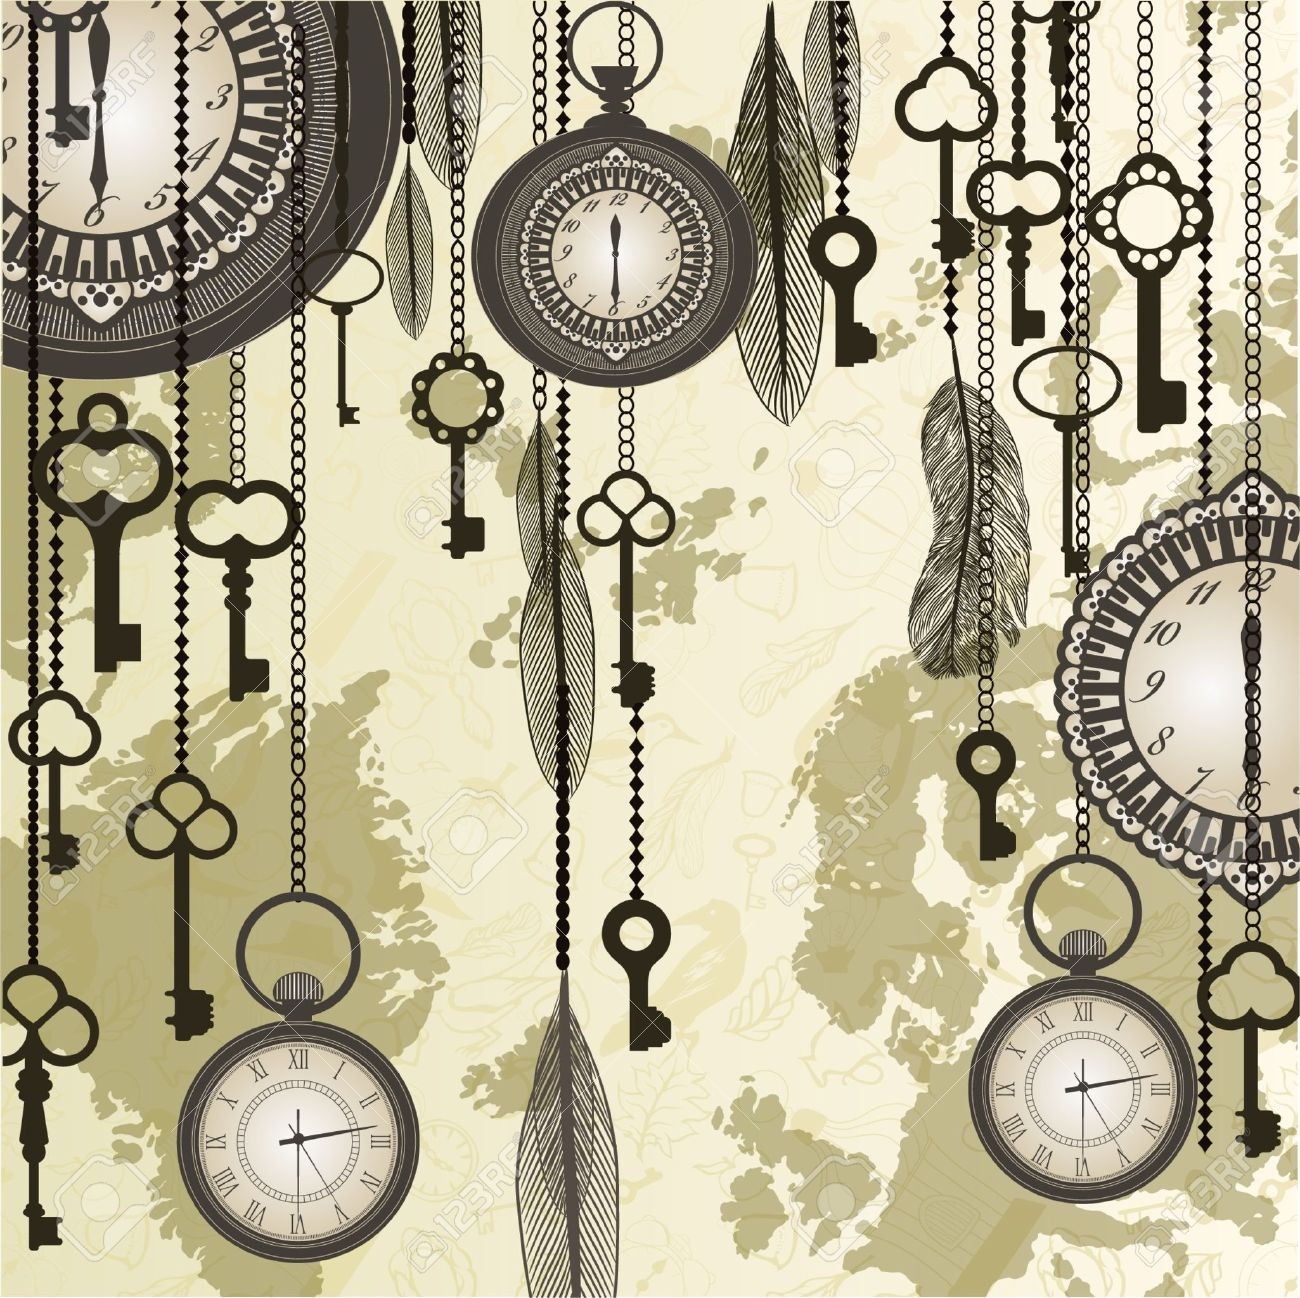 Antique background with grungy map and clocks Stock Vector - 12389418